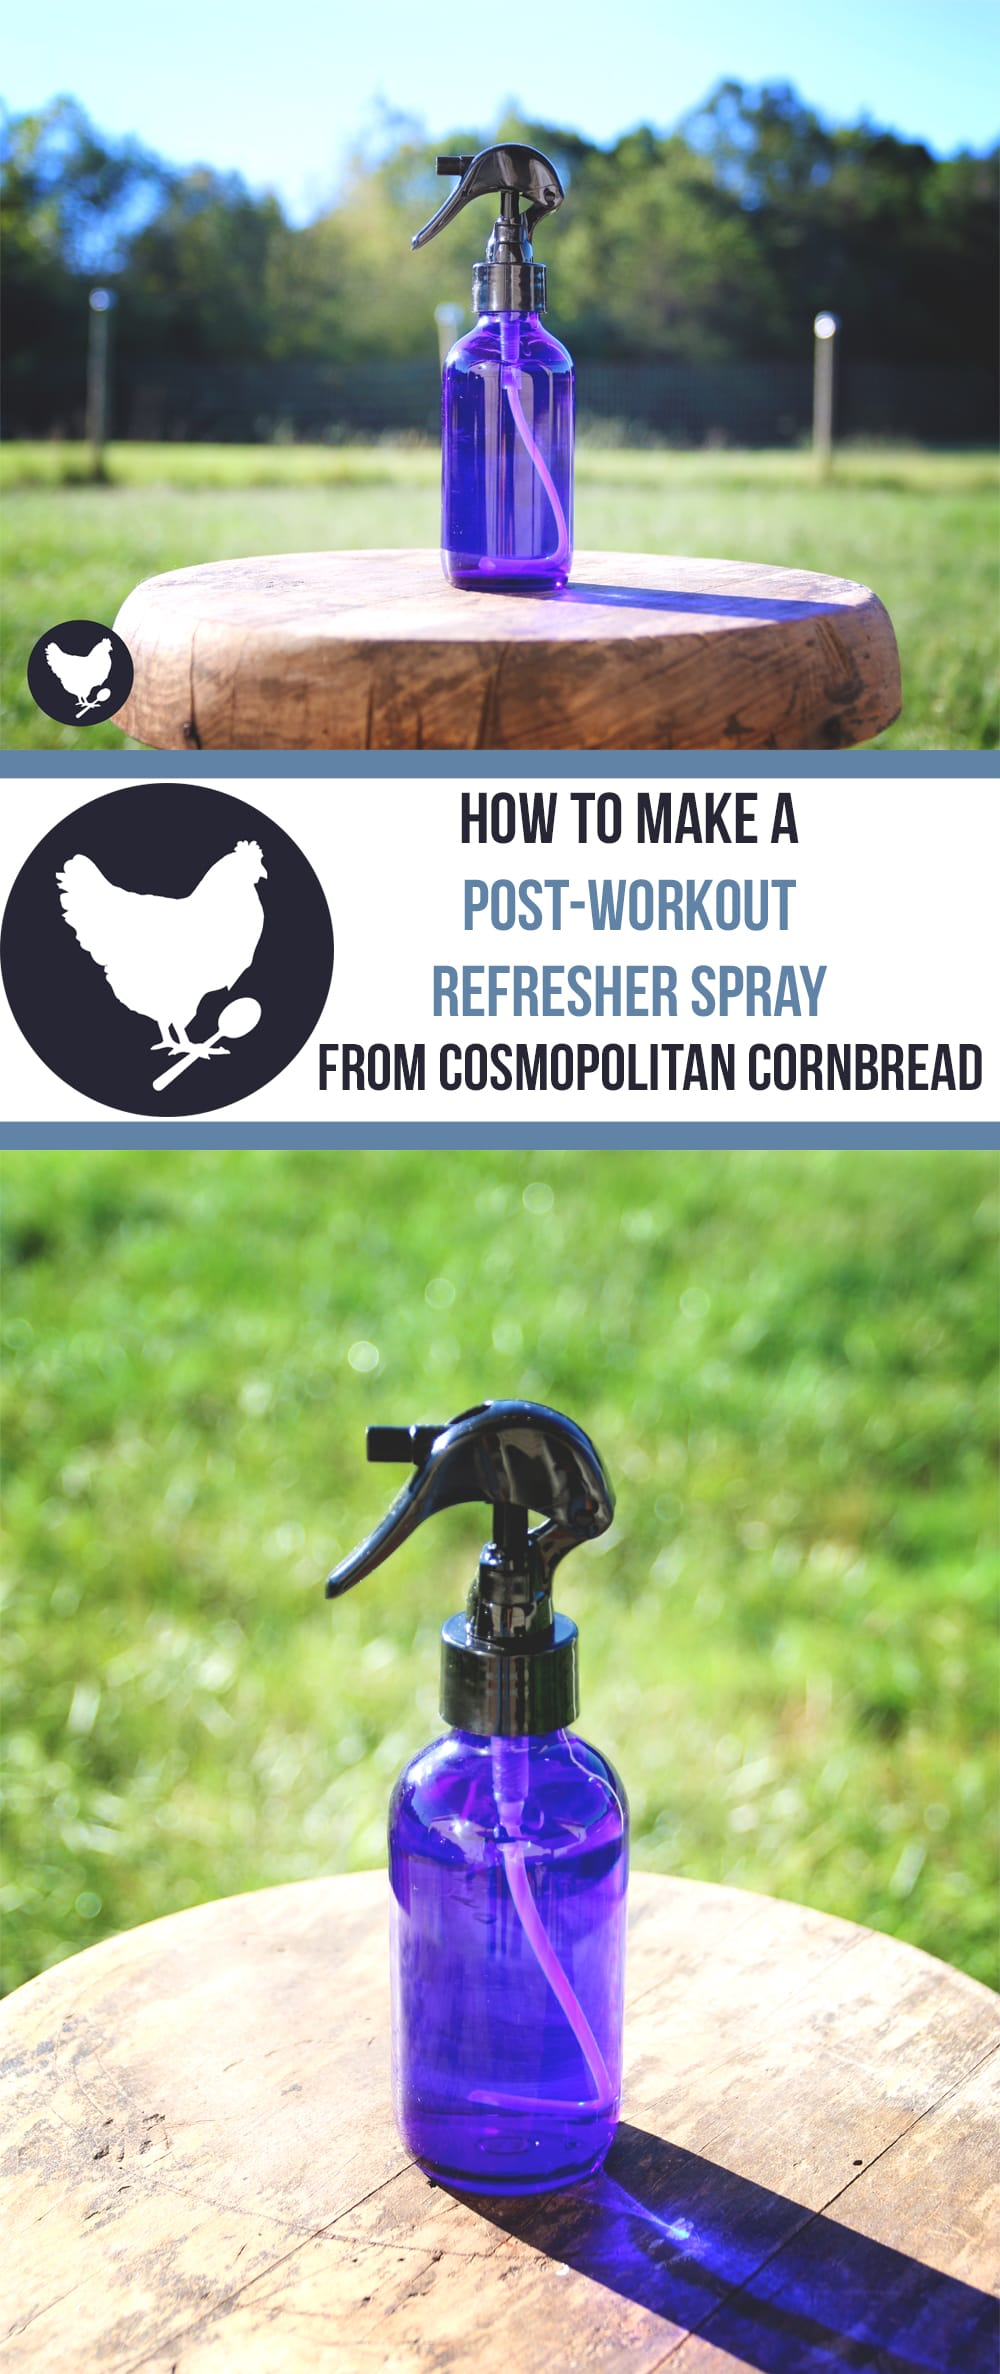 Refresh your skin with this natural, homemade spray. Great for after a workout, or a hot day in the sun! Find out how to make it from Cosmopolitan Cornbread.